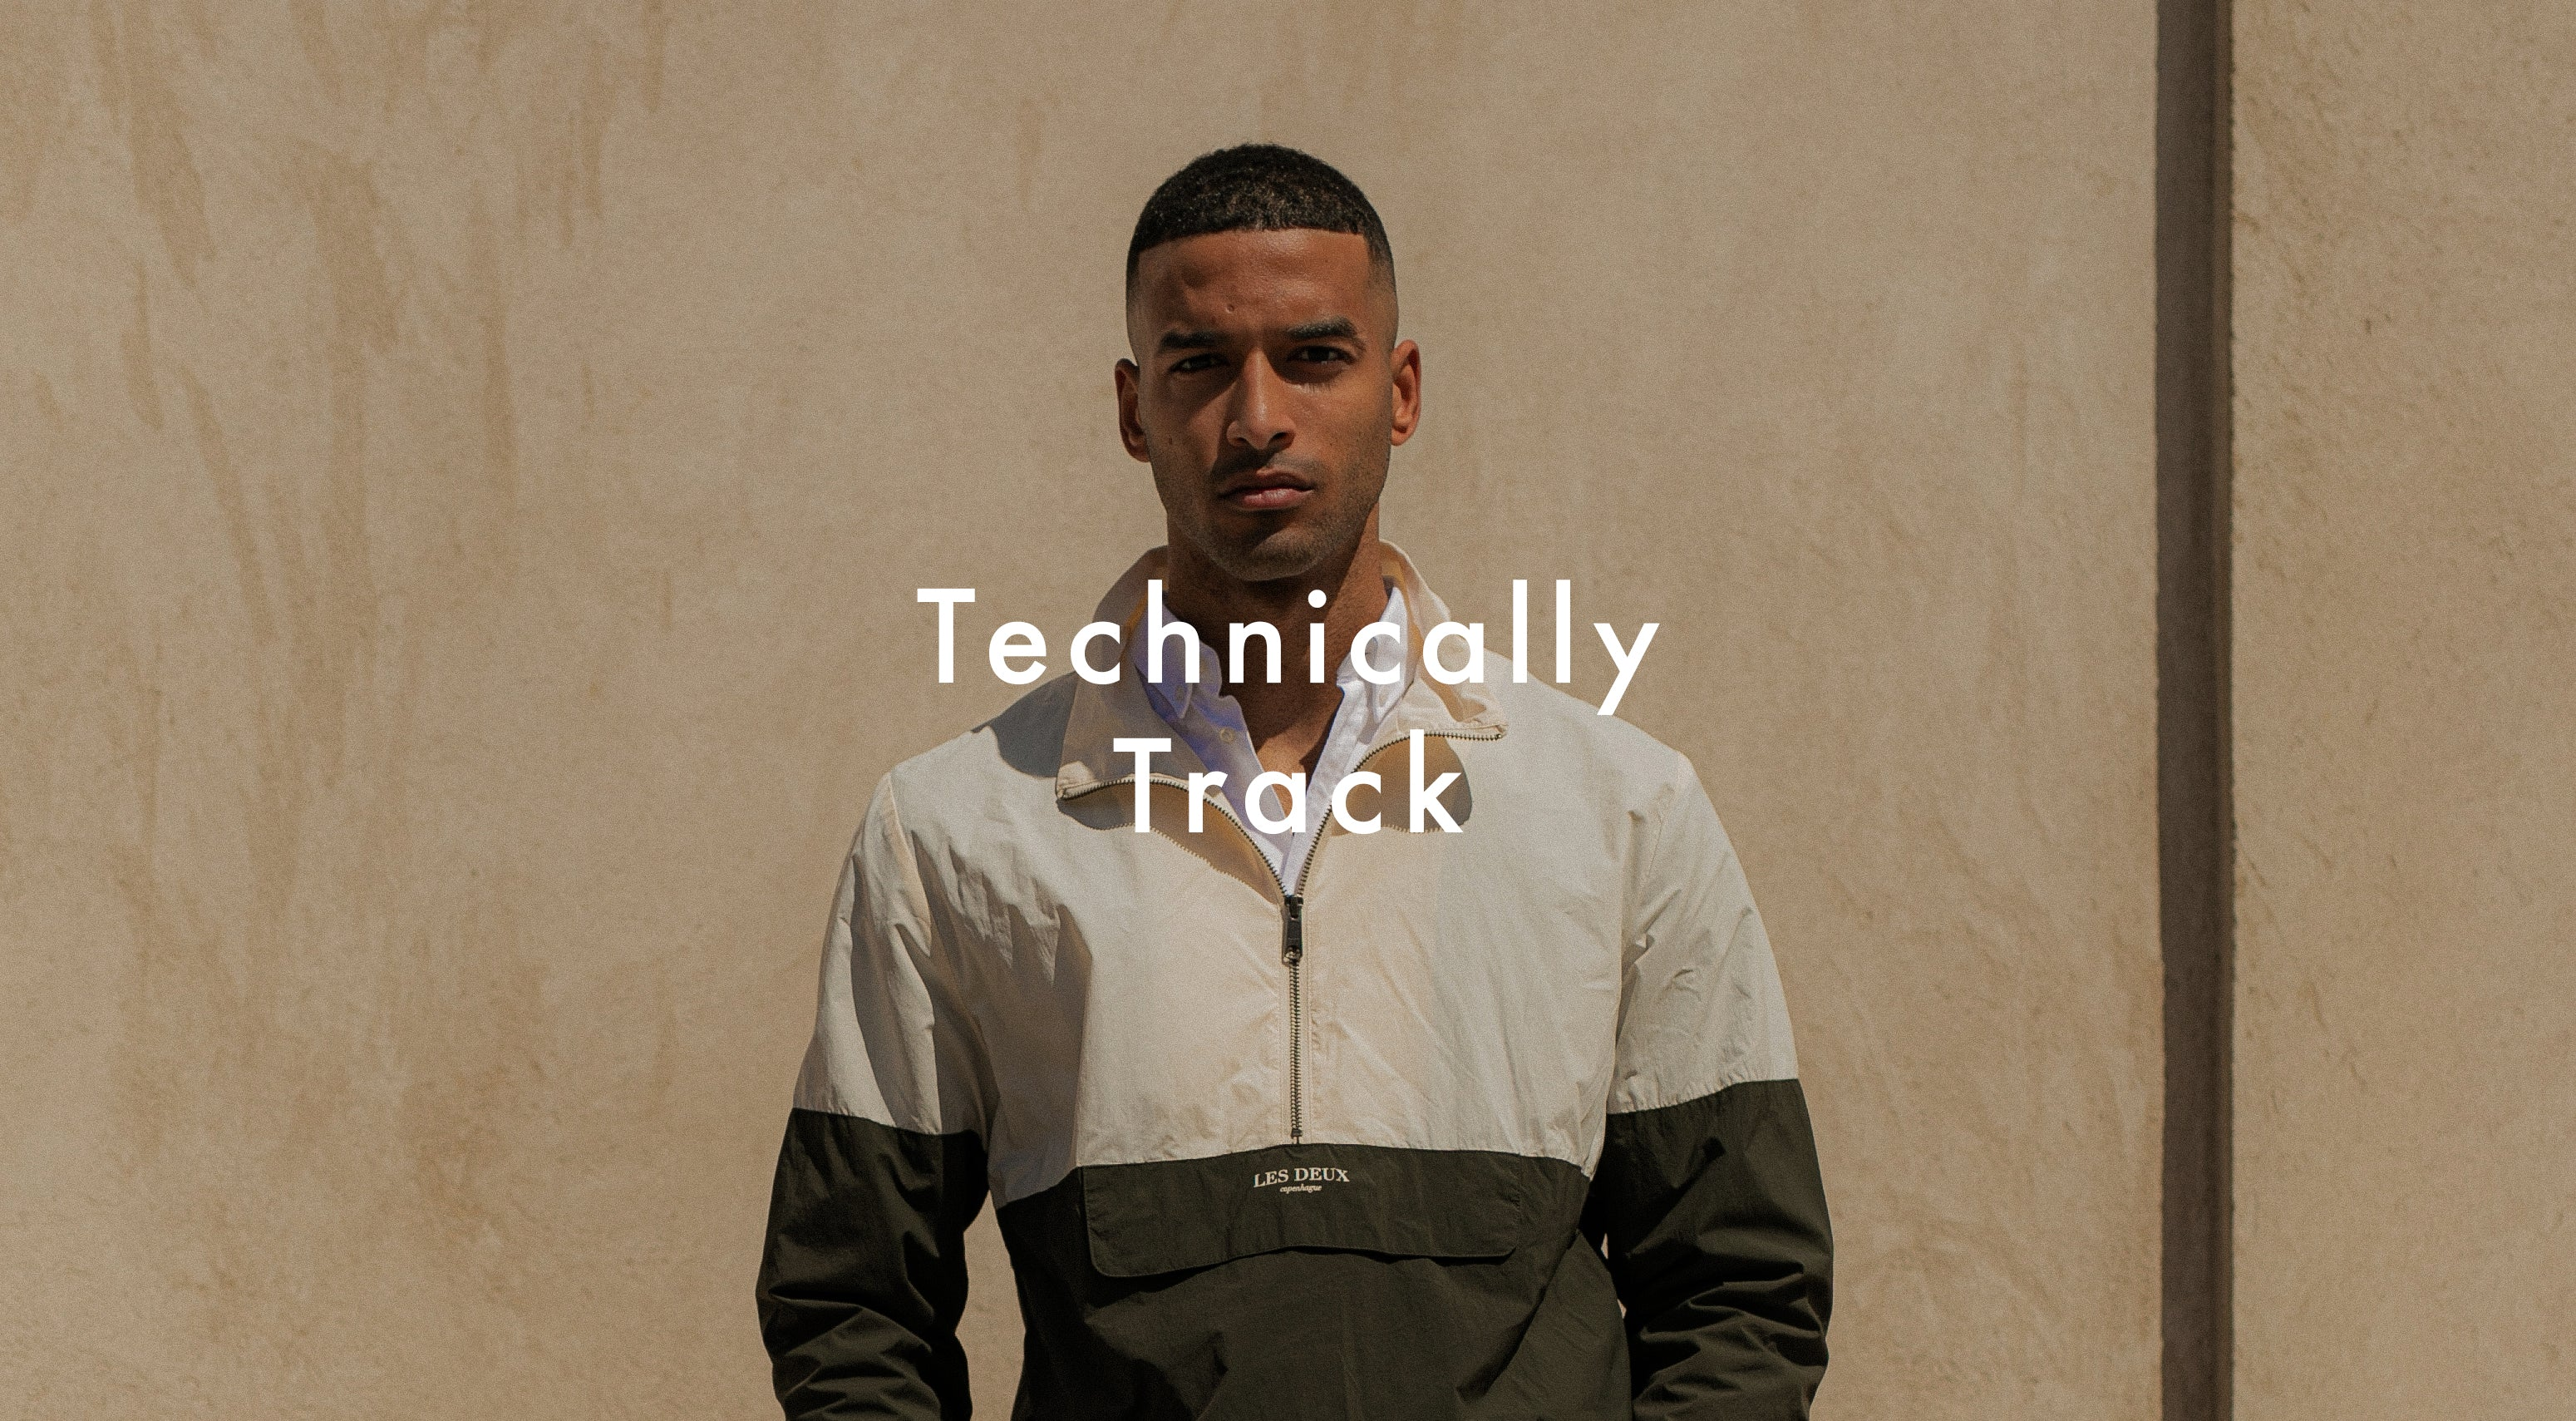 Technically Track - An Autumn Editorial